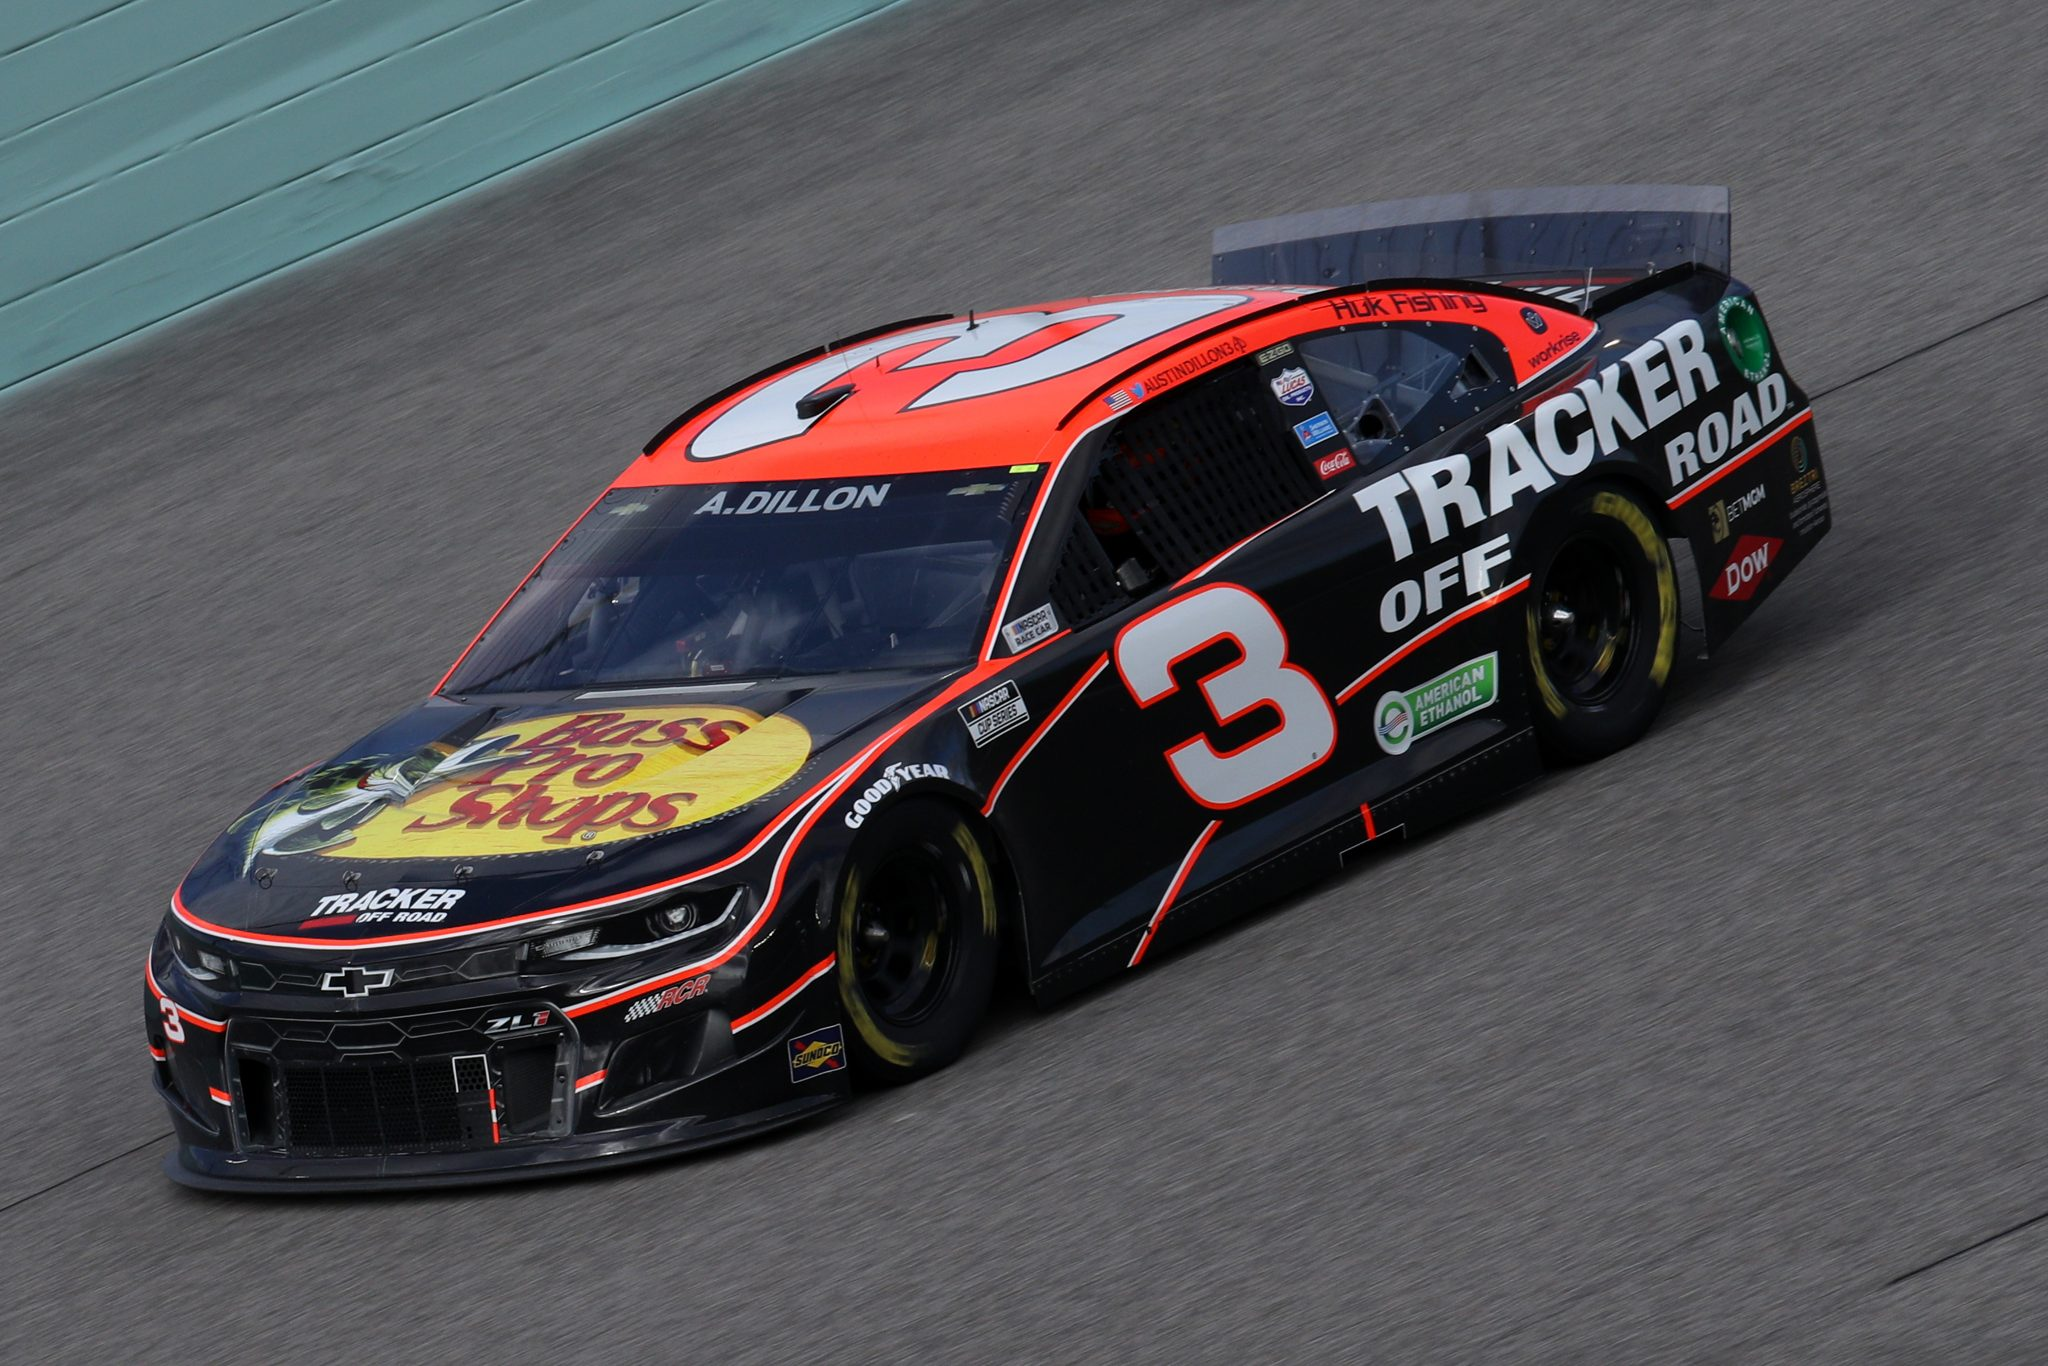 HOMESTEAD, FLORIDA - FEBRUARY 28: Austin Dillon, driver of the #3 Bass Pro Shops/Tracker Off Road Chevrolet, drives during the NASCAR Cup Series Dixie Vodka 400 at Homestead-Miami Speedway on February 28, 2021 in Homestead, Florida. (Photo by Sean Gardner/Getty Images) | Getty Images